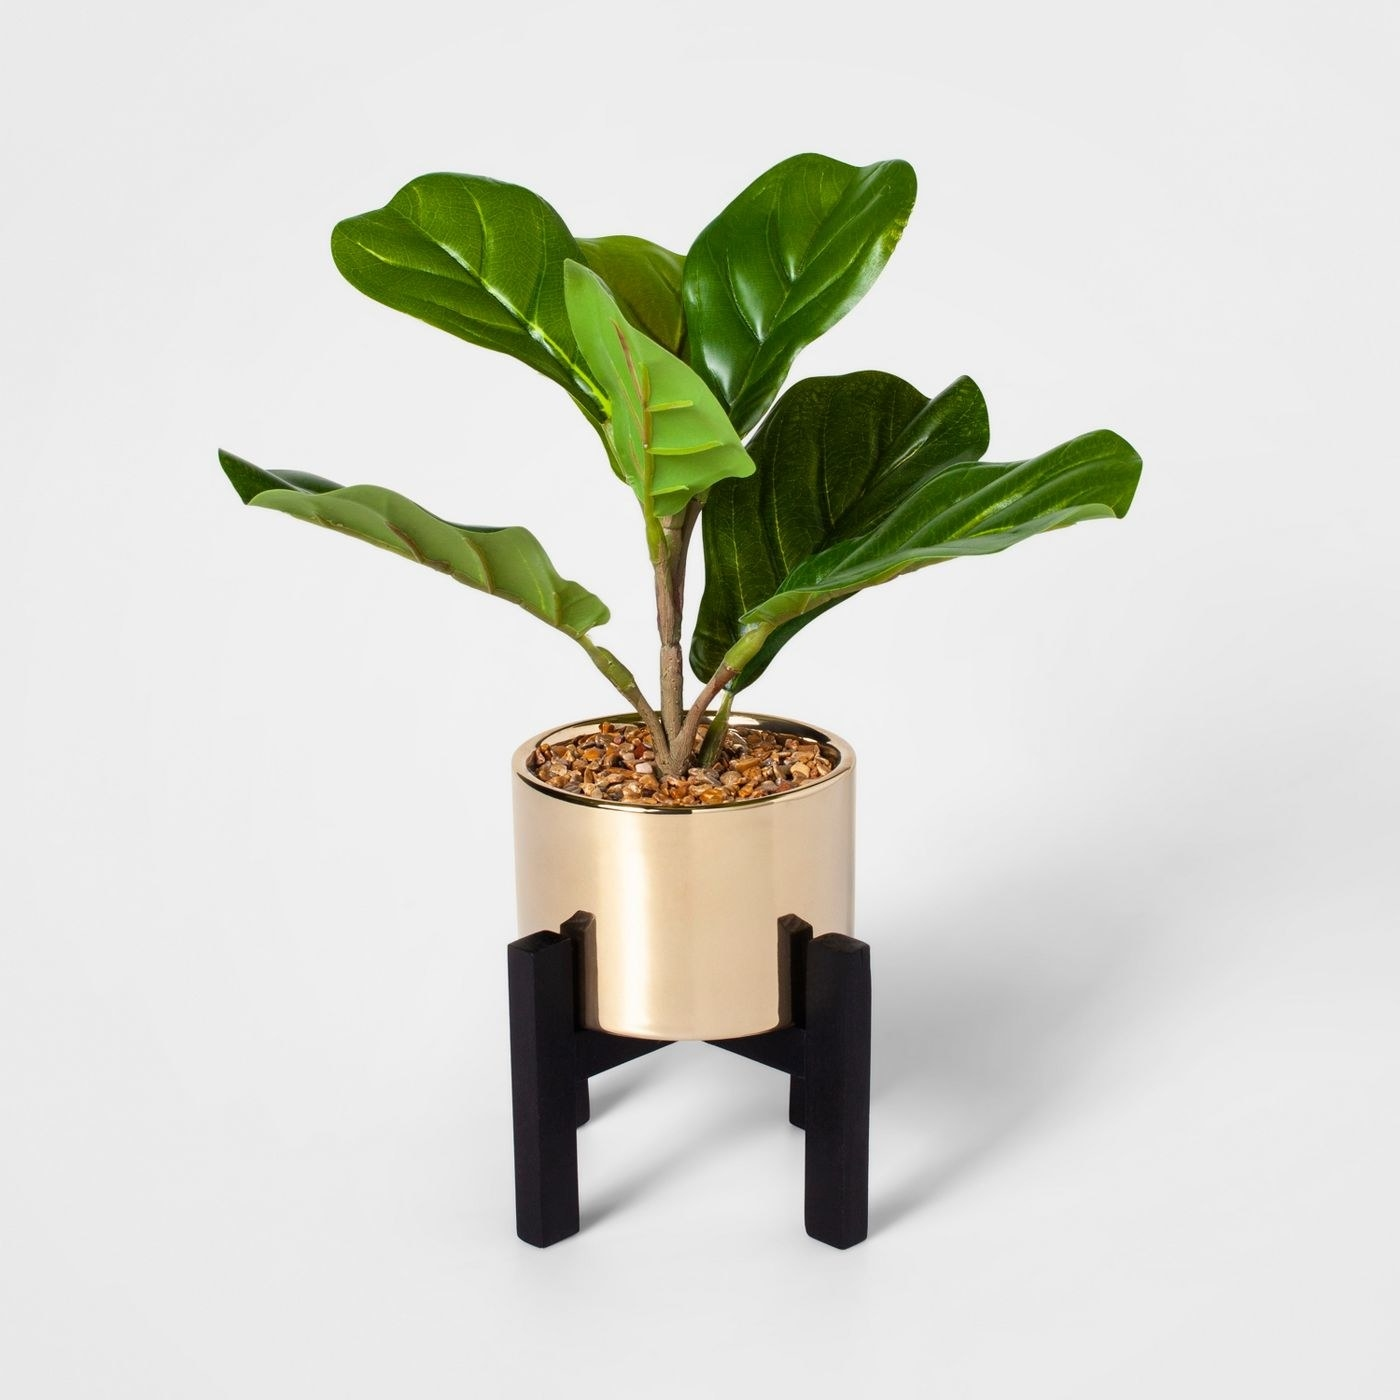 A faux fiddle leaf fig in a gold planter with black legs